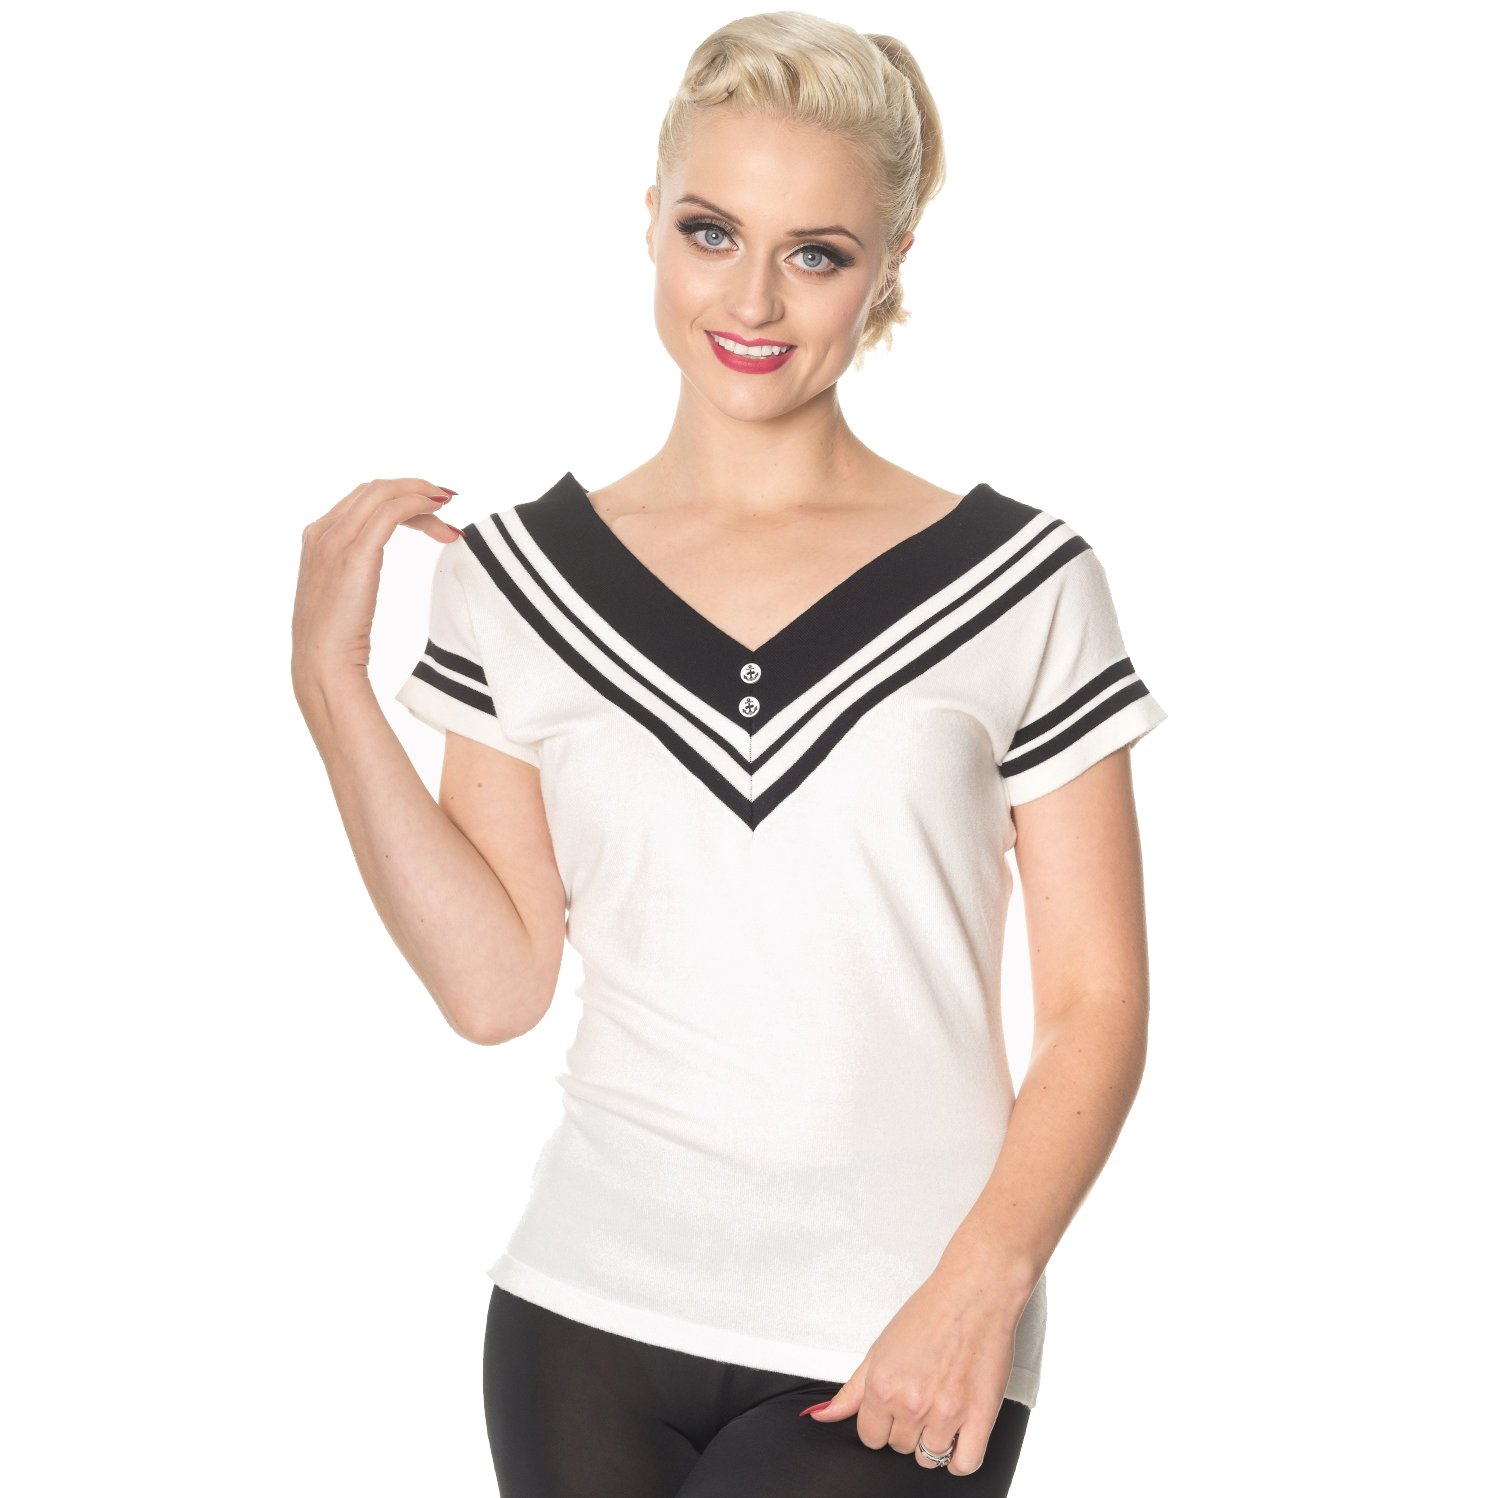 1940s Blouses, Shirts and Tops Fashion History Dancing Days Cedar Nautical Sailor Short Sleeve 1950s Vintage Retro Sweater Top �26.99 AT vintagedancer.com